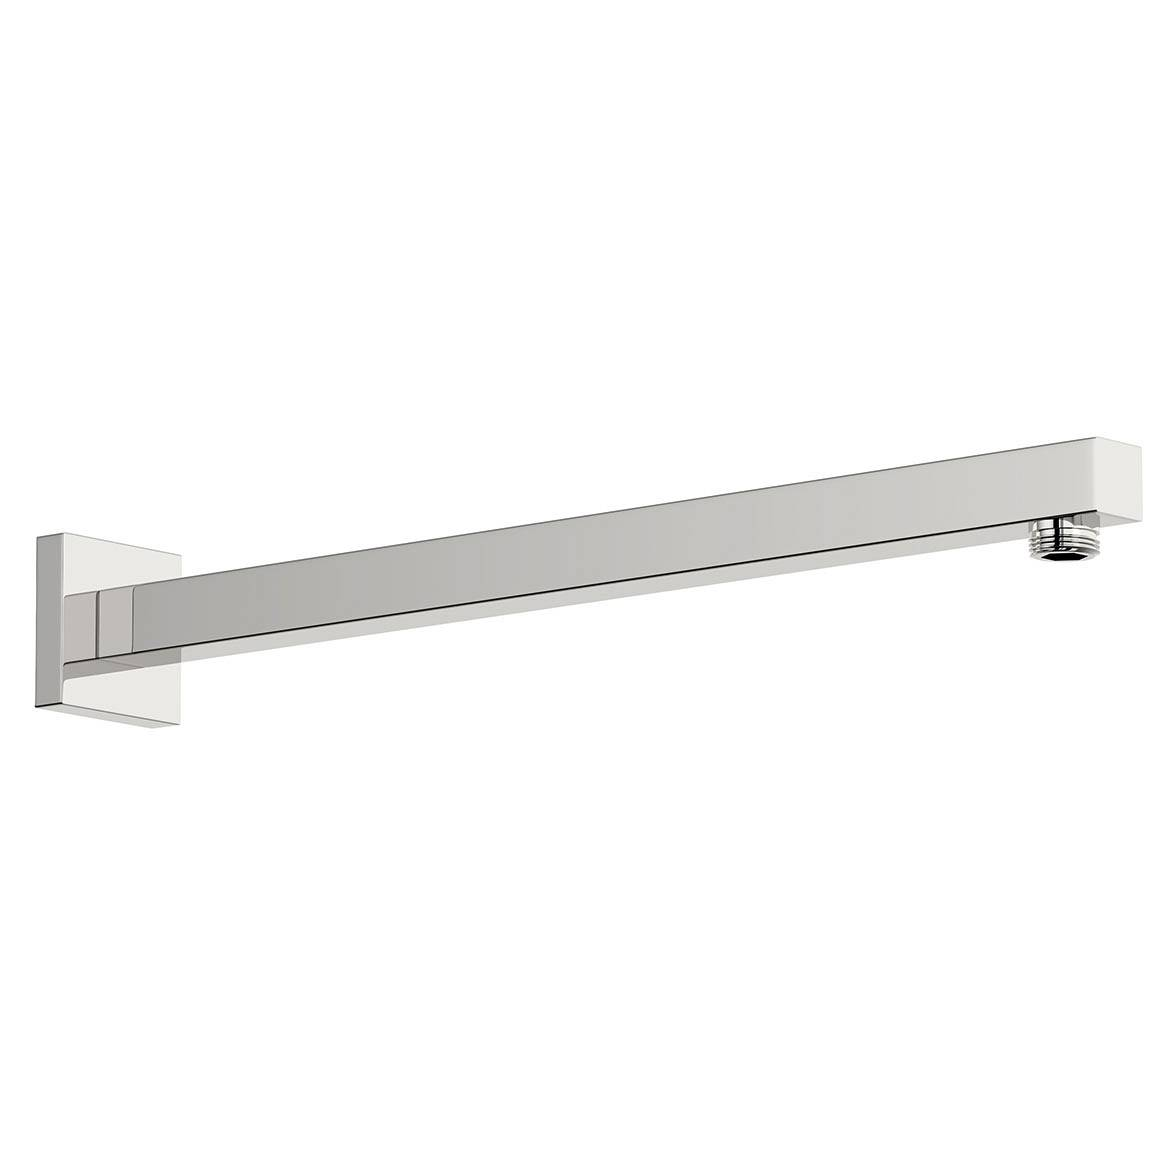 Image of Wall Shower Arm 400mm Square